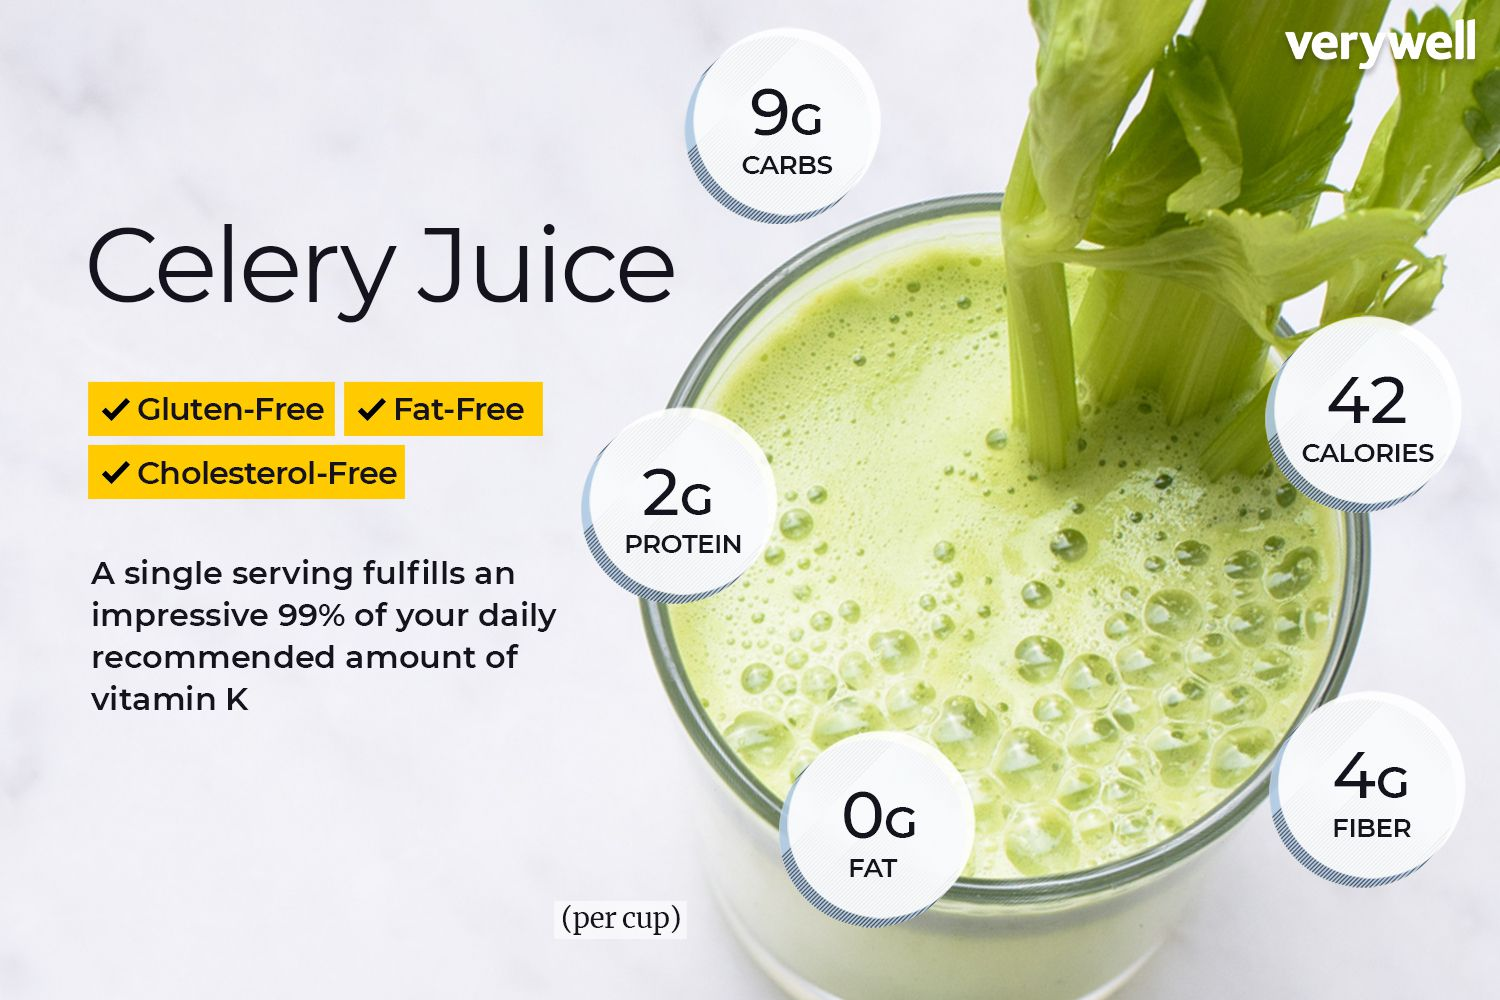 celery juice nutrition facts